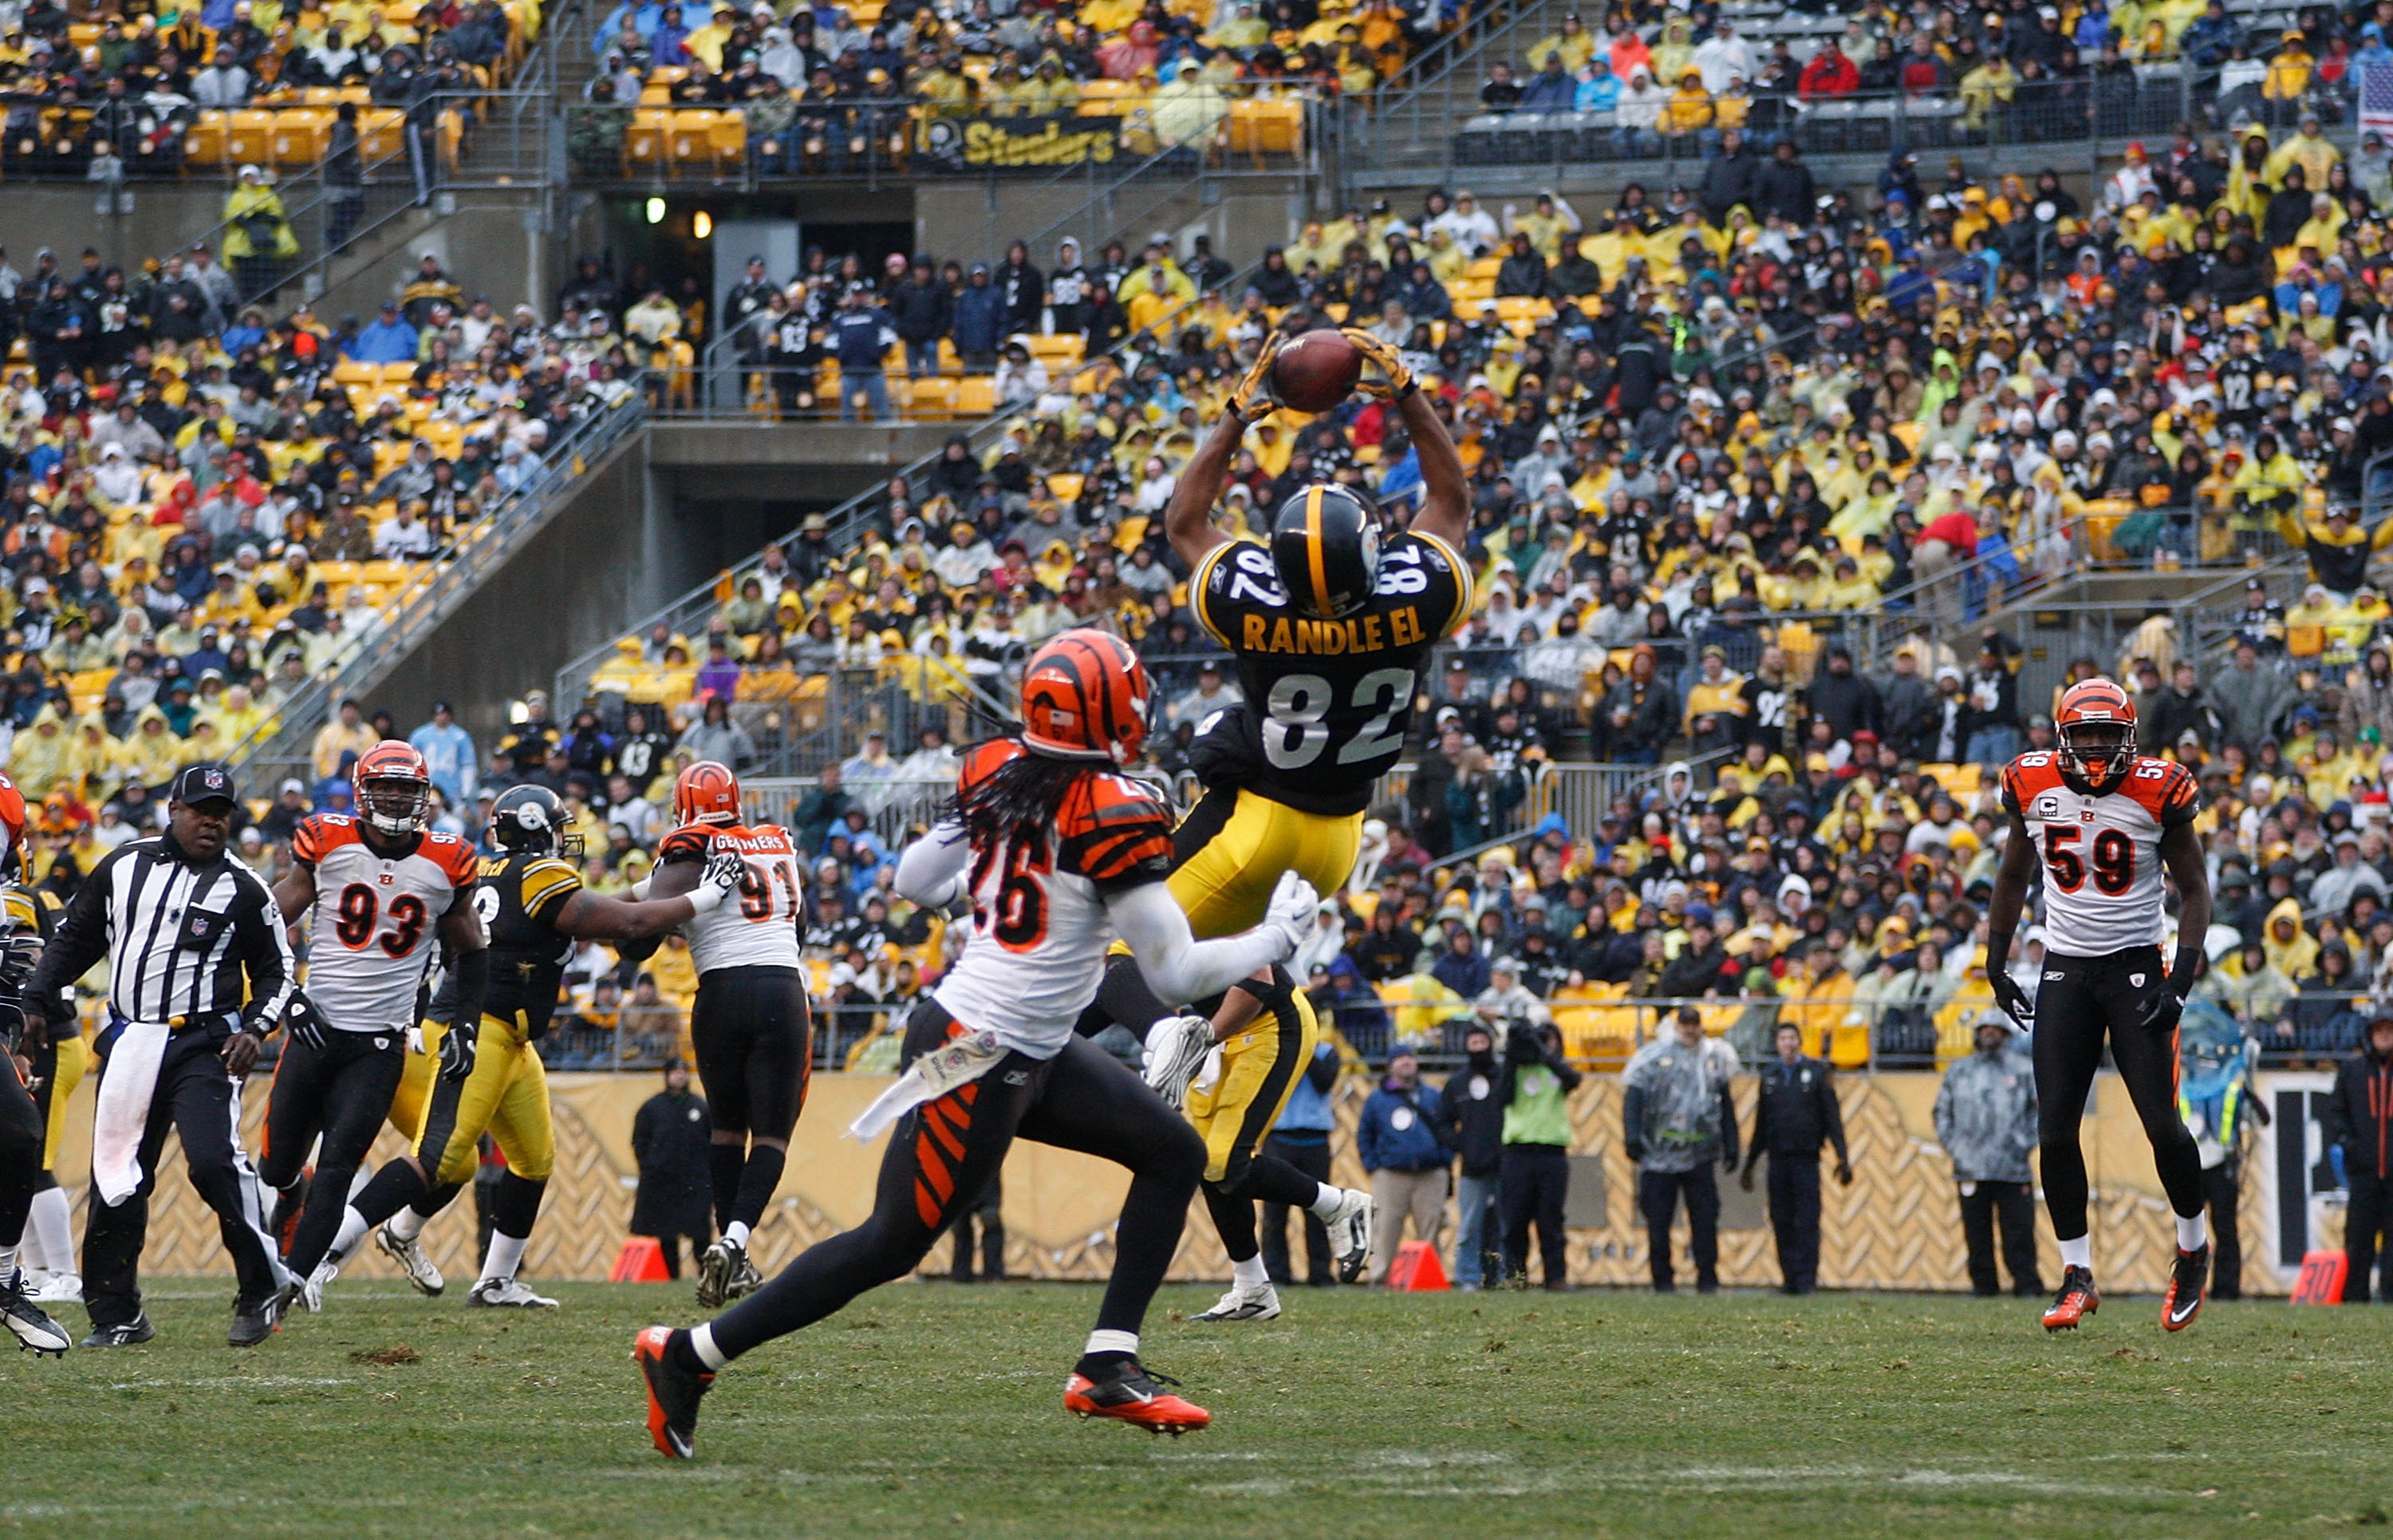 PITTSBURGH - DECEMBER 12:  Antwaan Randle El #82 of the Pittsburgh Steelers catches a pass in front of Johnathan Wade #26 of the Cincinnati Bengals during the game on December 12, 2010 at Heinz Field in Pittsburgh, Pennsylvania.  (Photo by Jared Wickerham